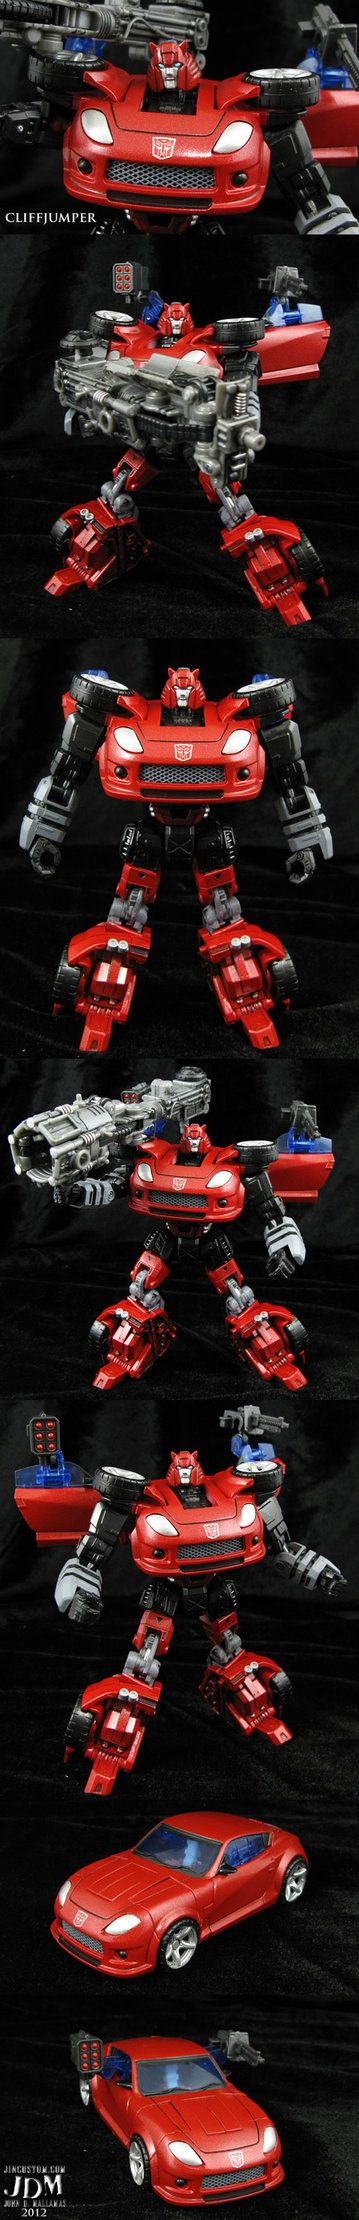 """All I can hear is Casey Kasem going, """"Lemme at 'em! No Decepticon's gonna mess with me when I look so bad! LEMME AT 'EM!"""